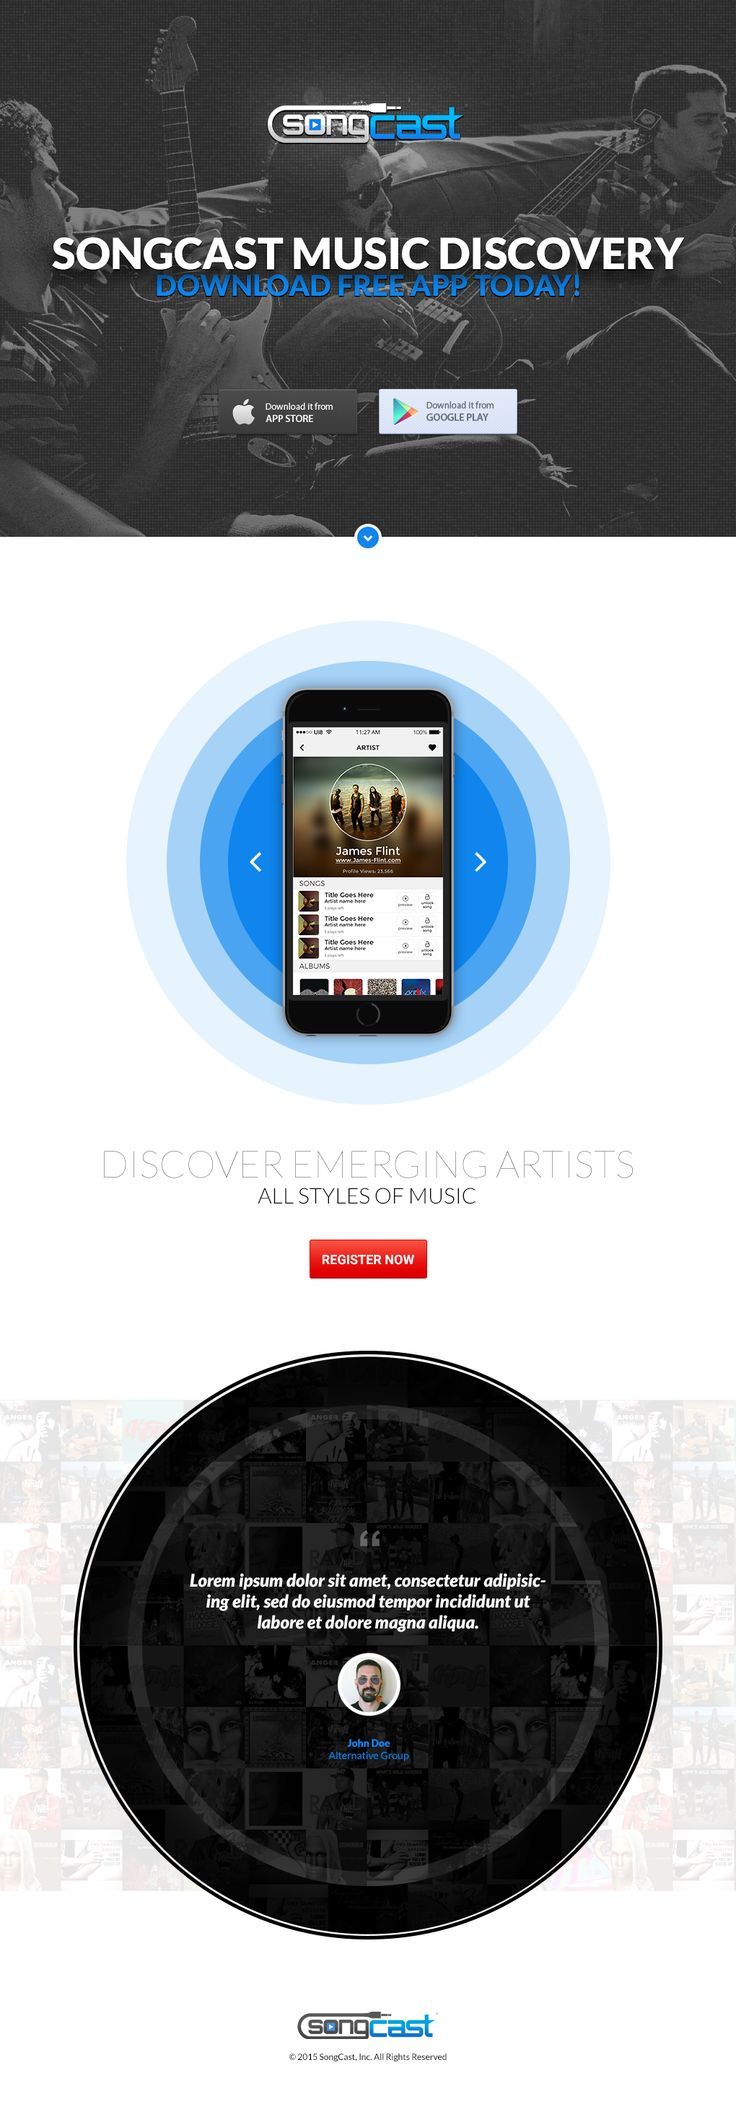 SongCast is a unique platform for music consumers to discover up and coming, emerging artists